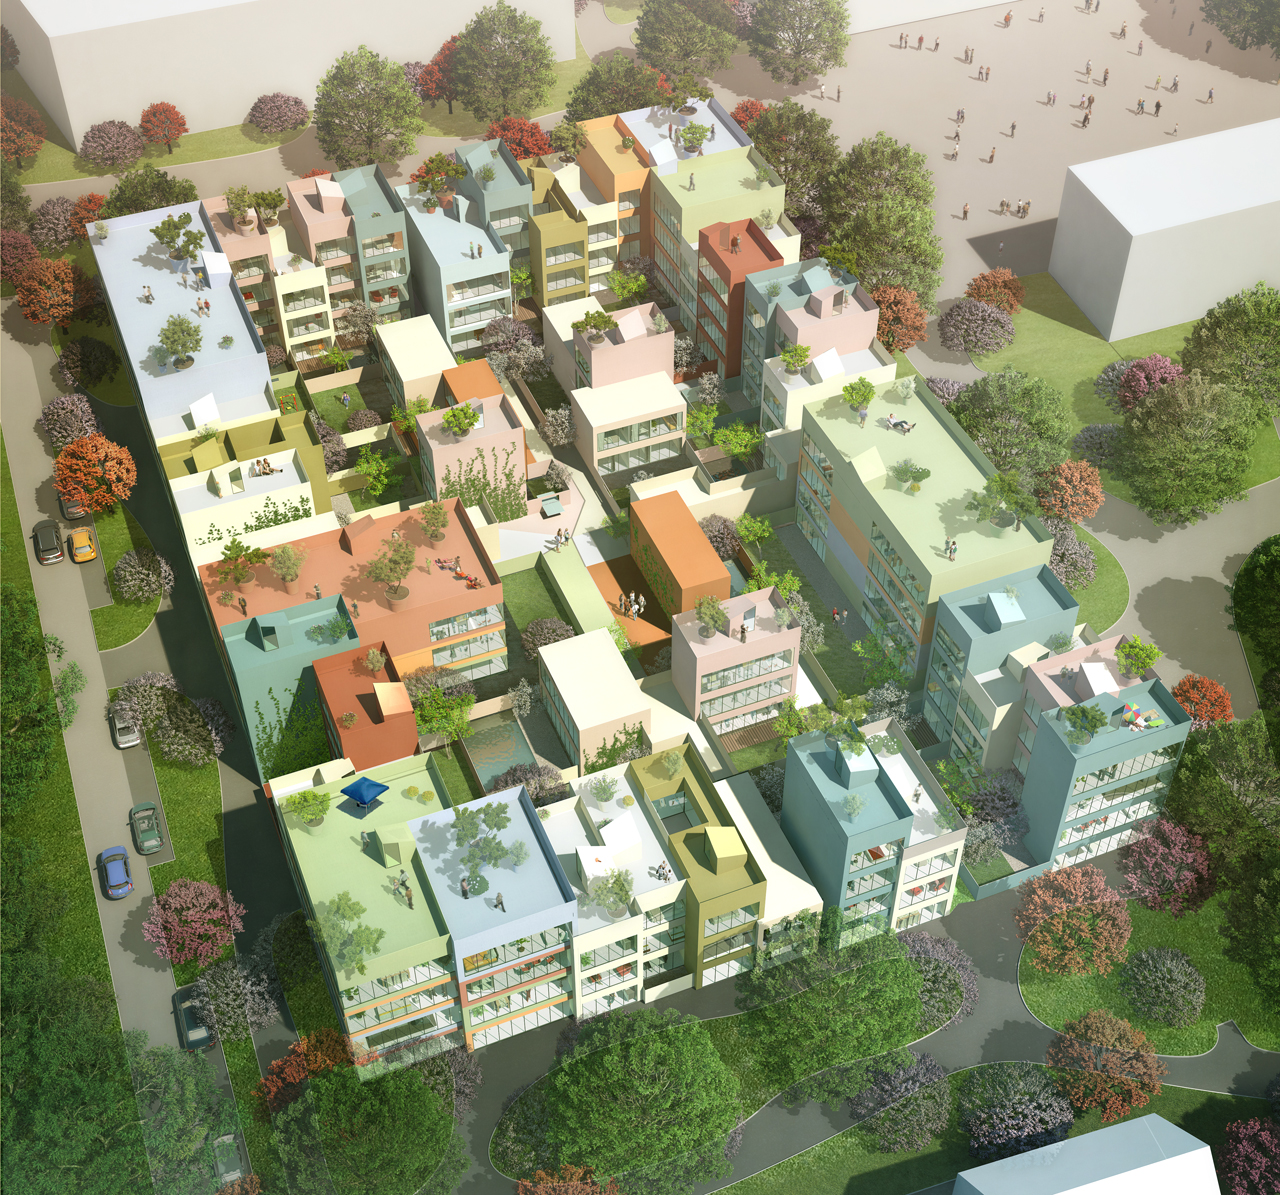 MVRDV WIN COMPETITION with Emmen Urban Hybrid